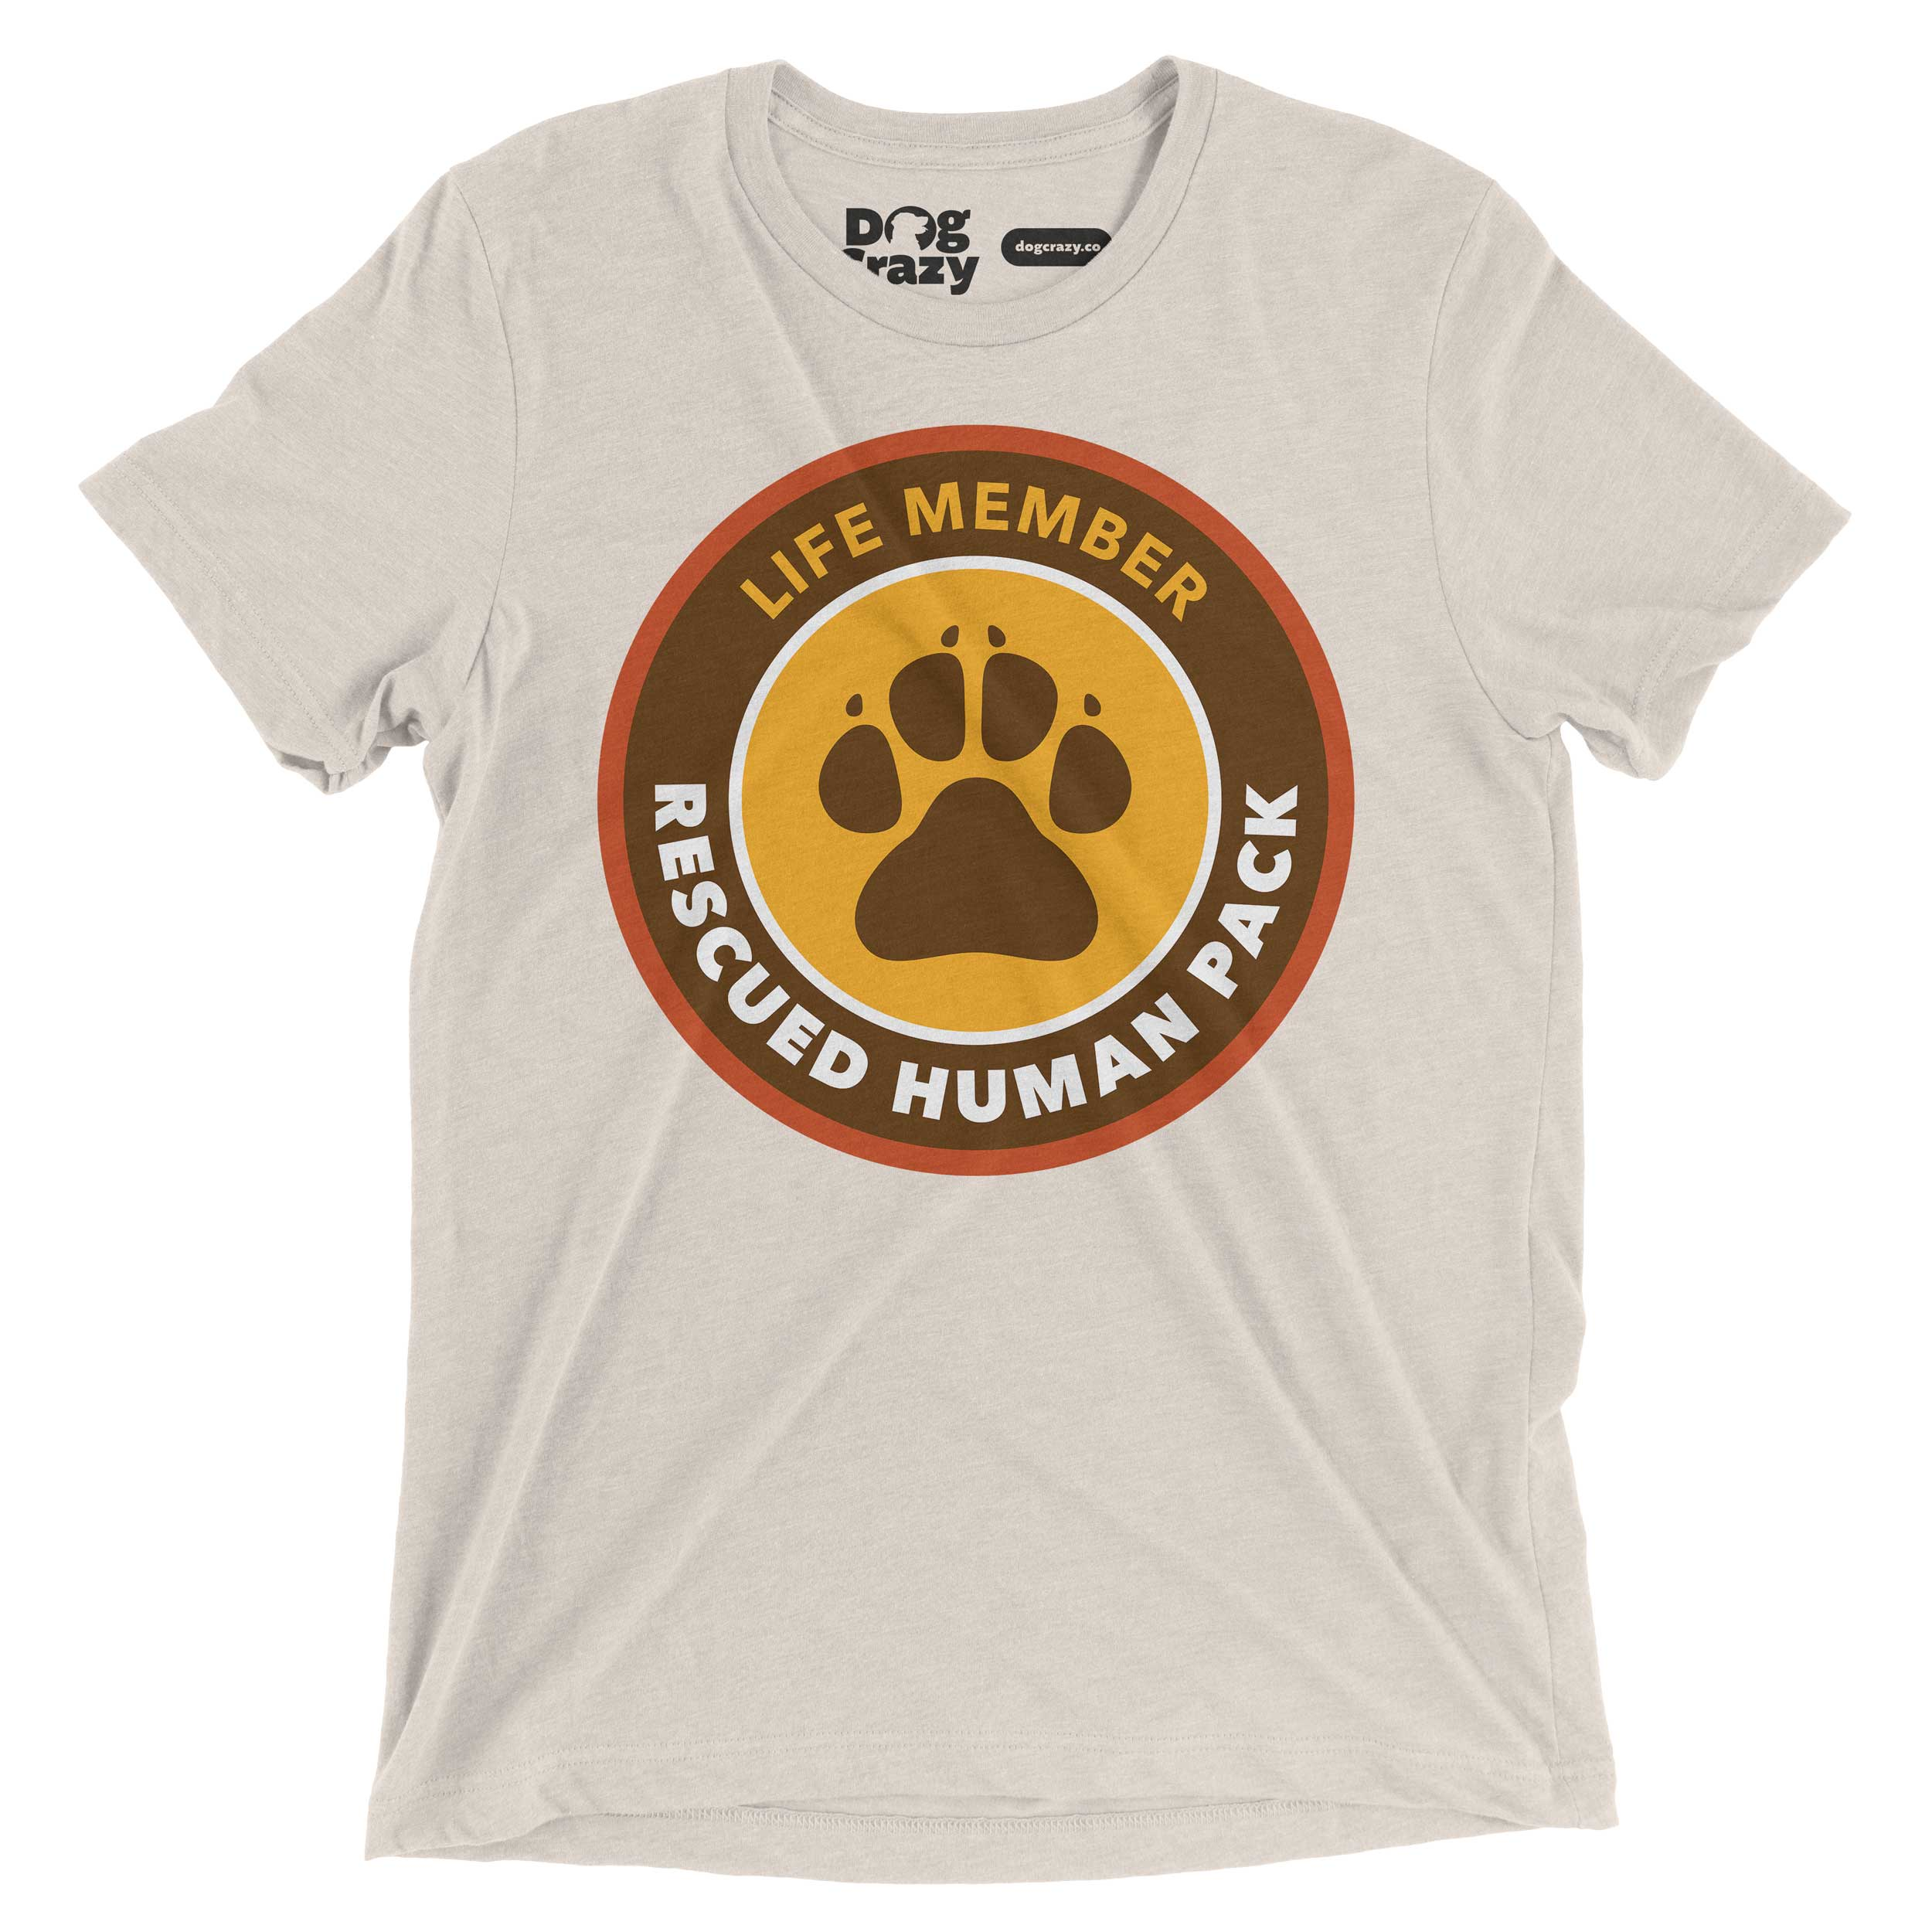 rescued human dog shirt for dog lovers